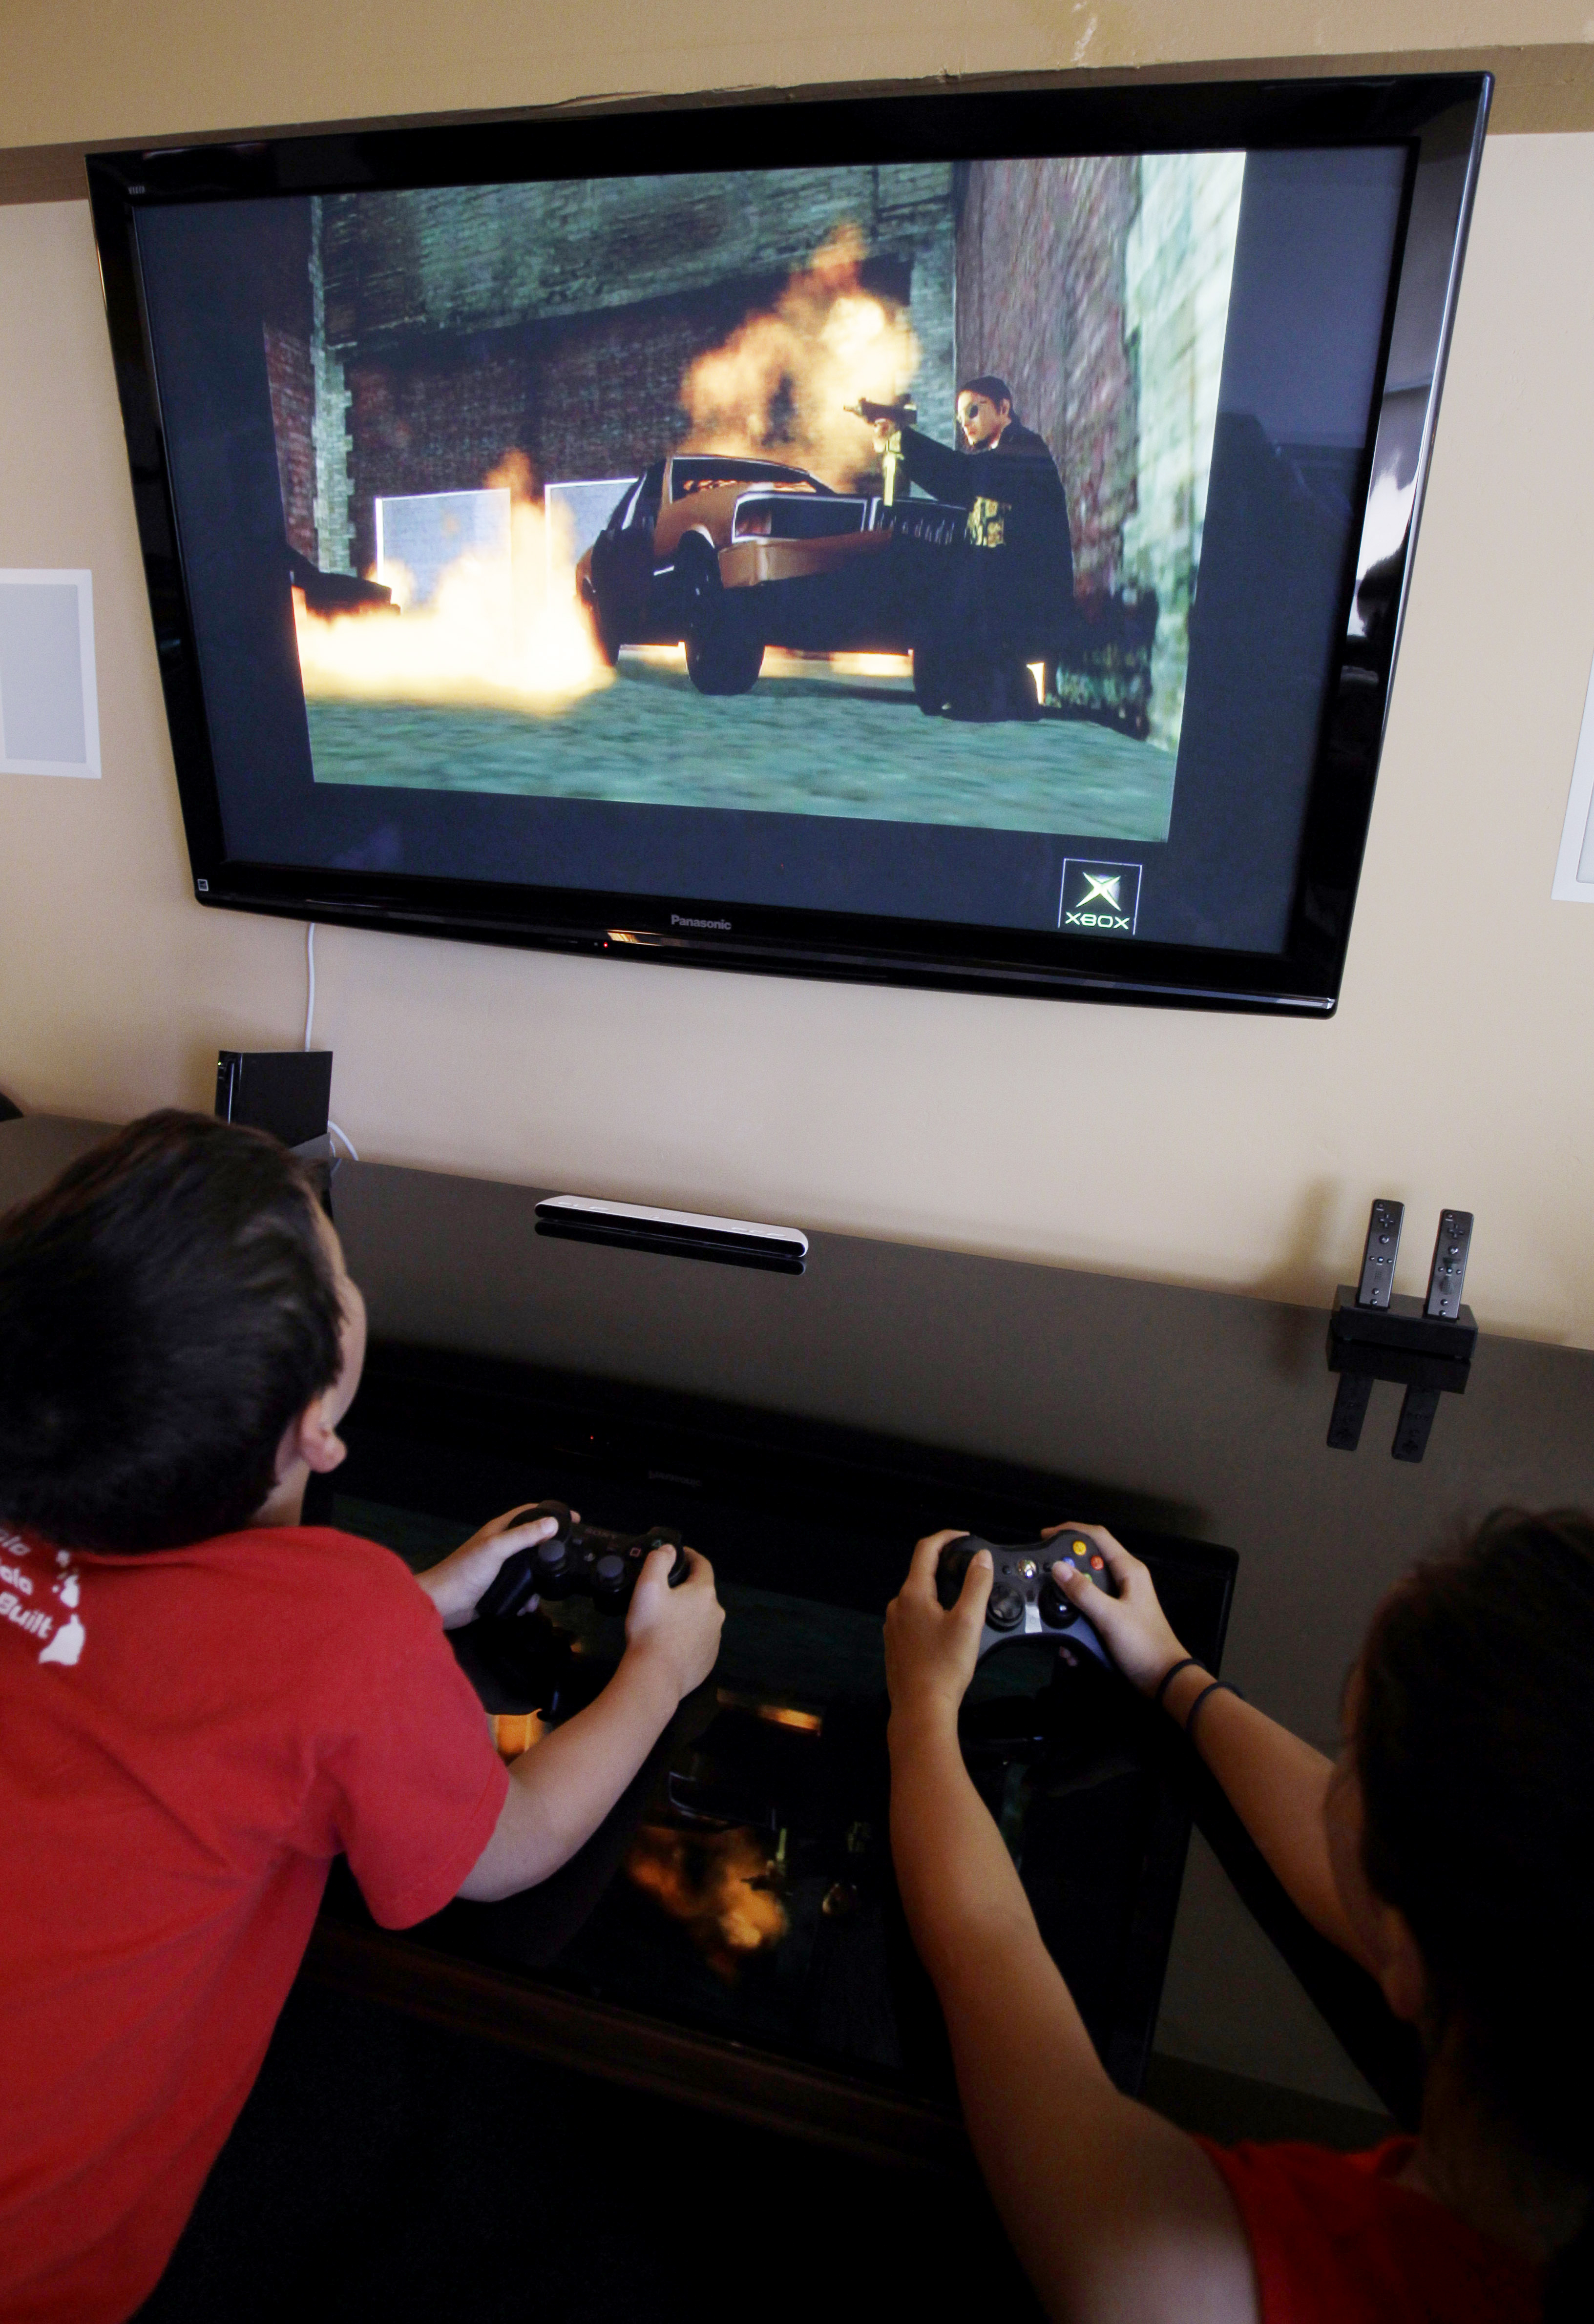 Video games unlikely to cause real-world violence, experts ...